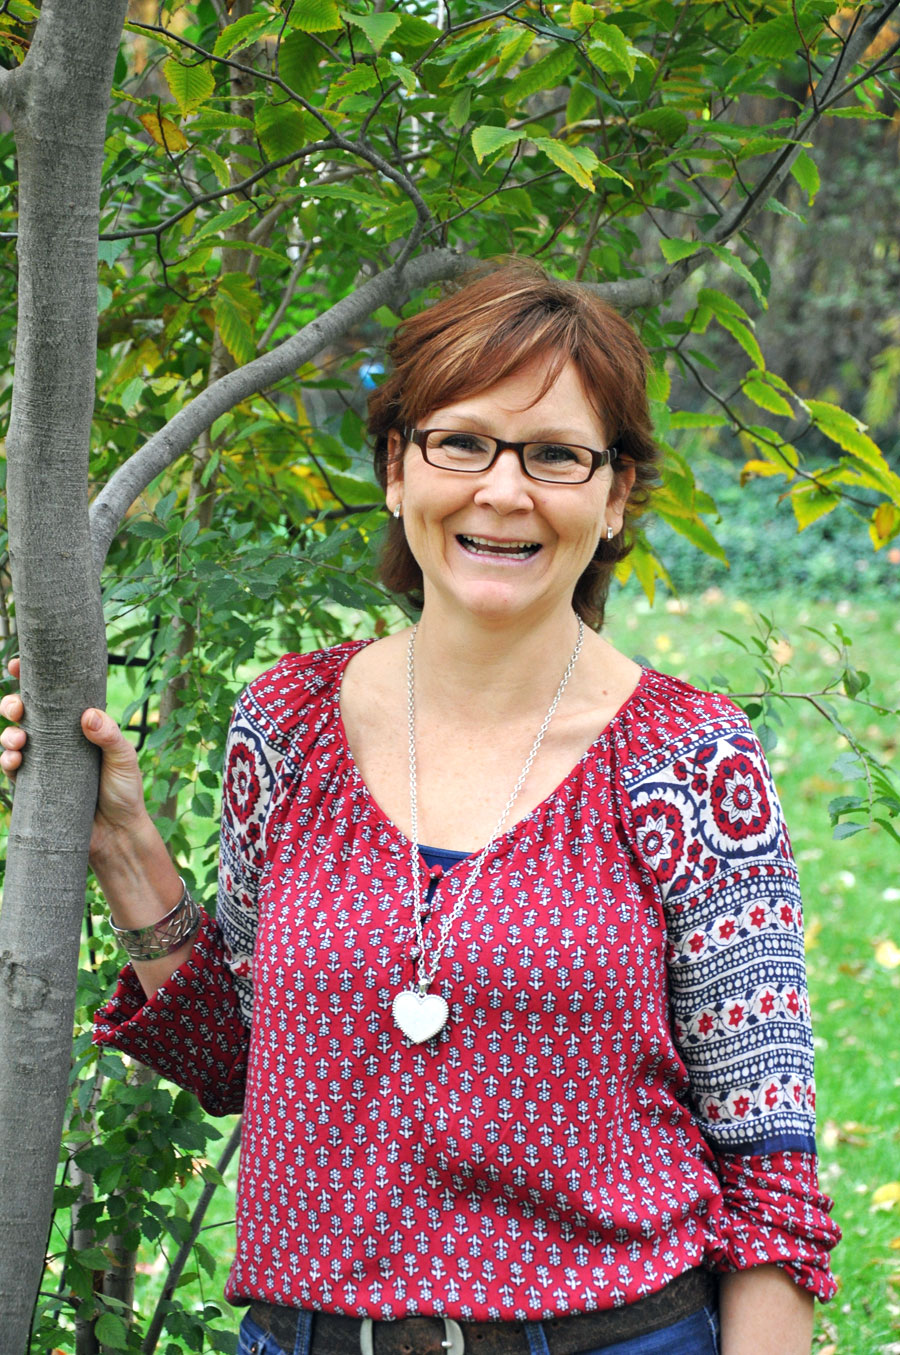 woman in colourful shirt, short dark hair and glasses, holding tree trunk